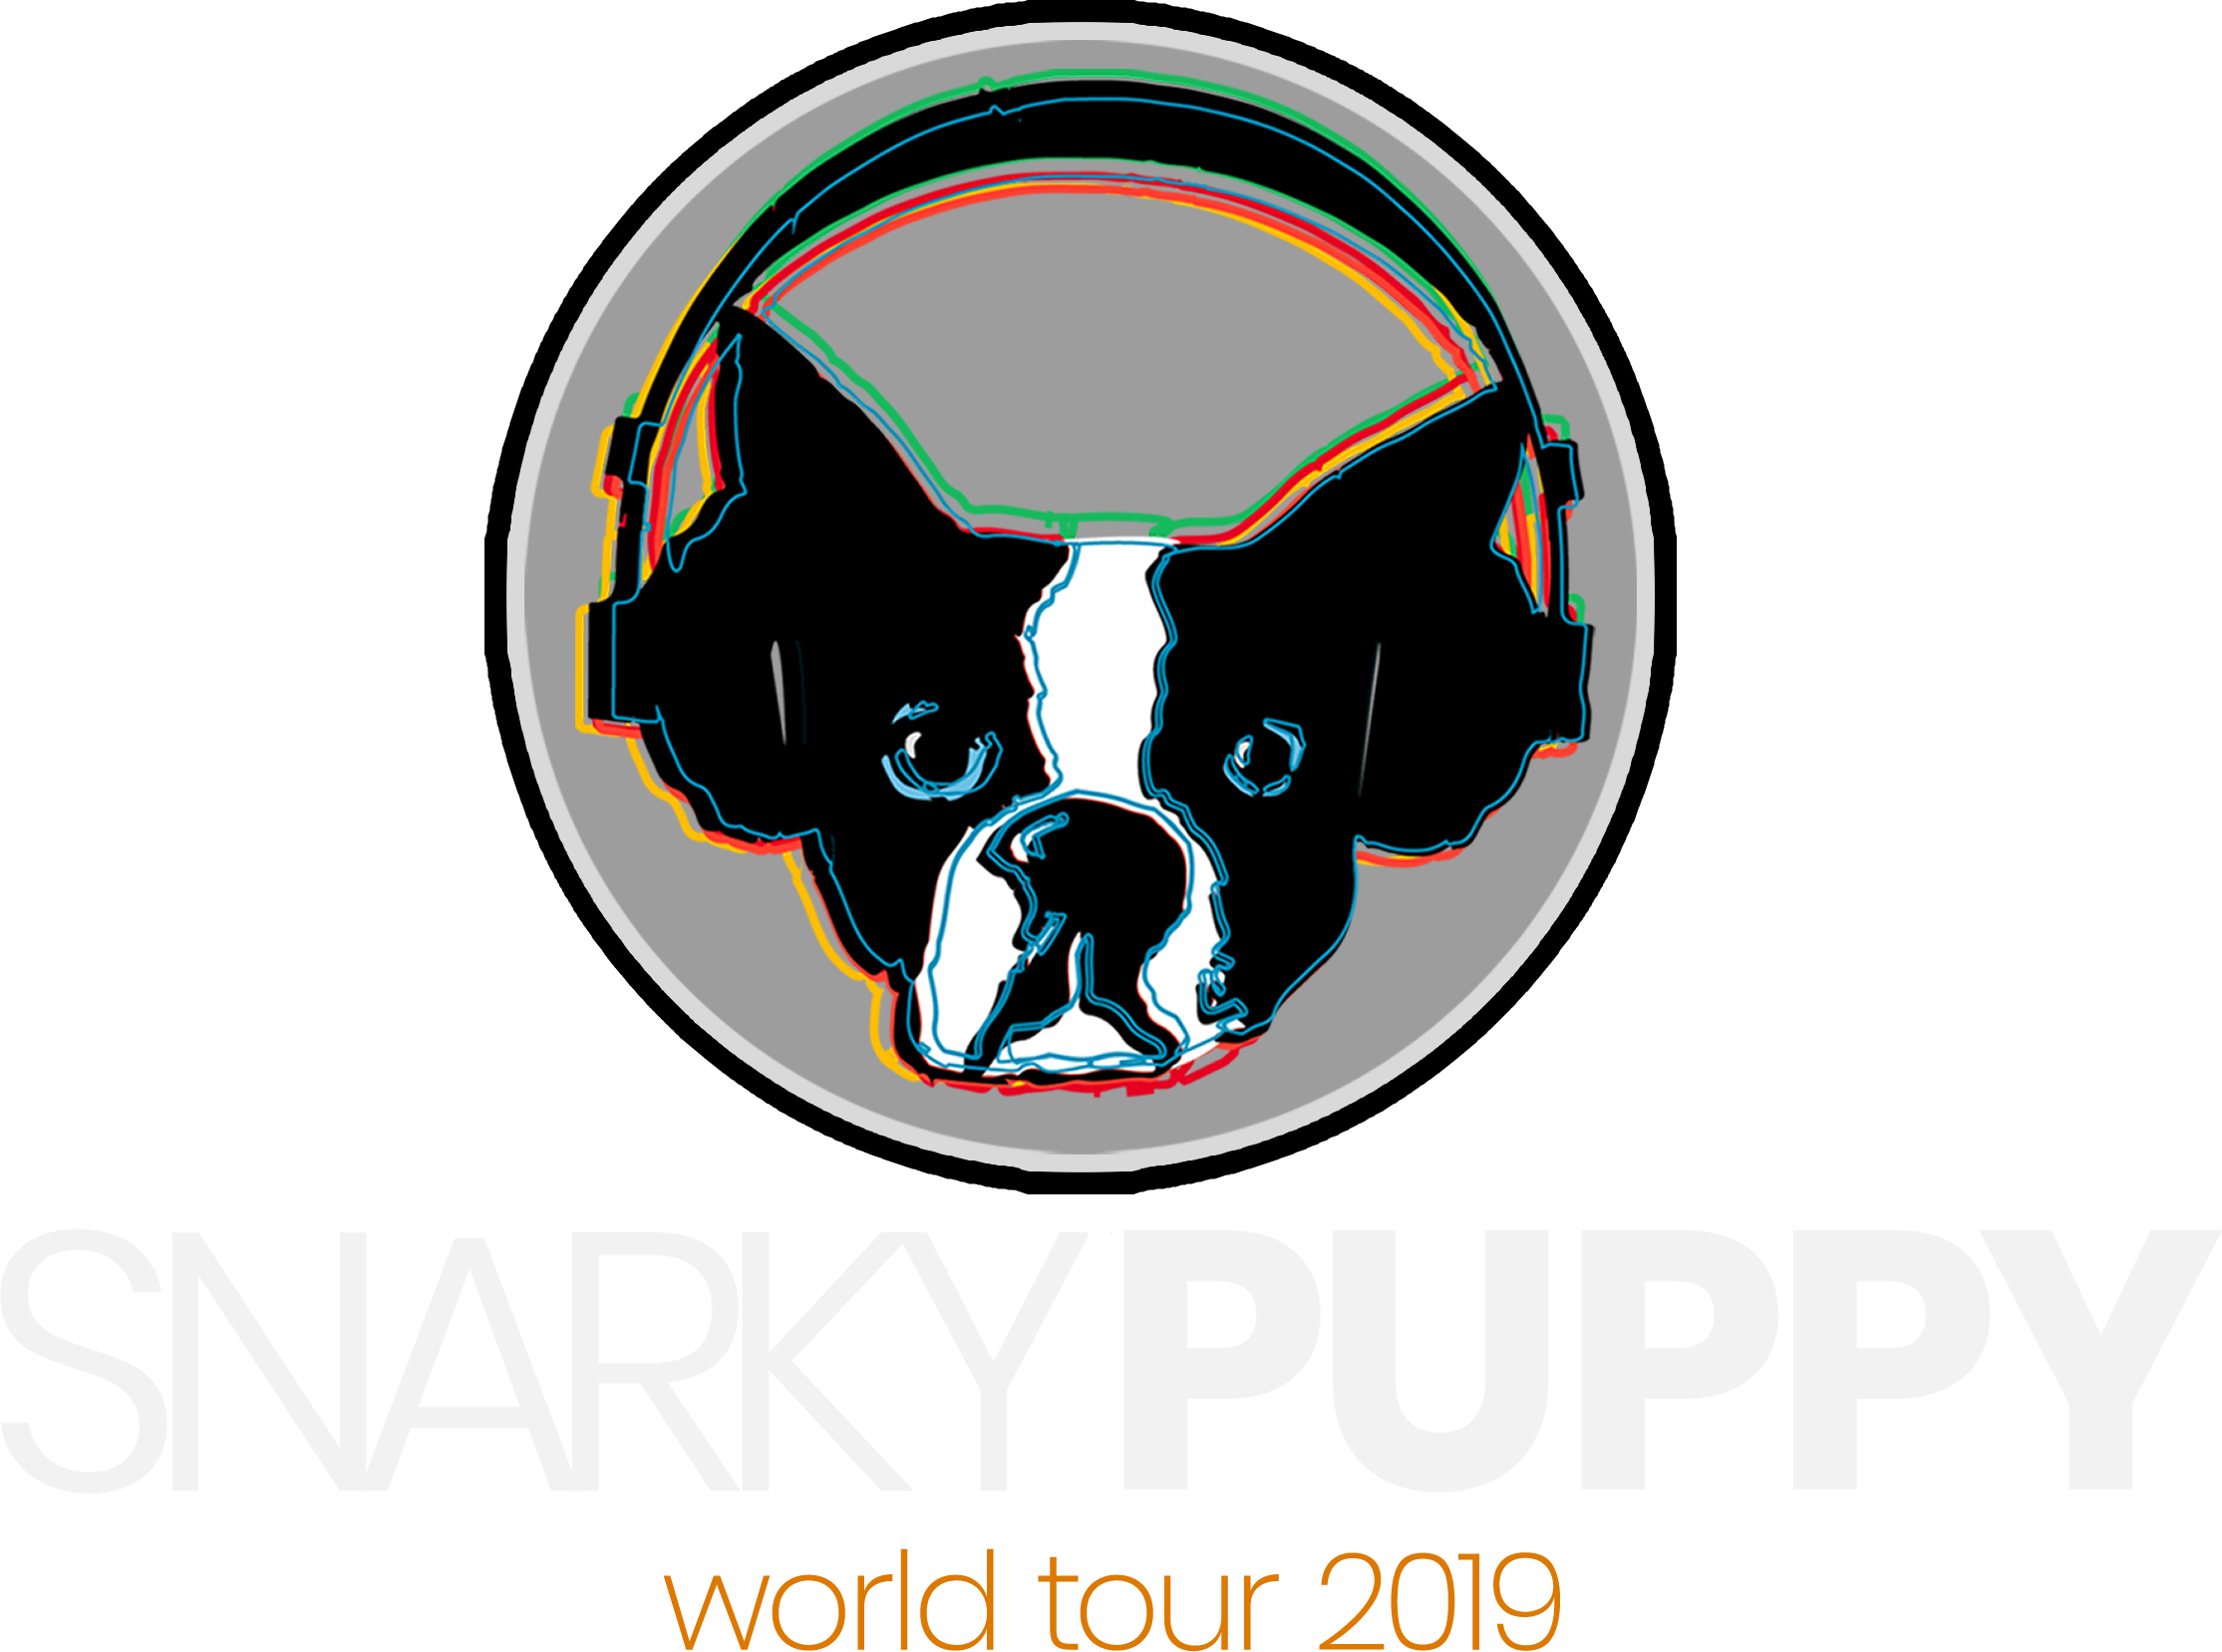 Snarky Puppy Logo that says 'World Tour 2019'